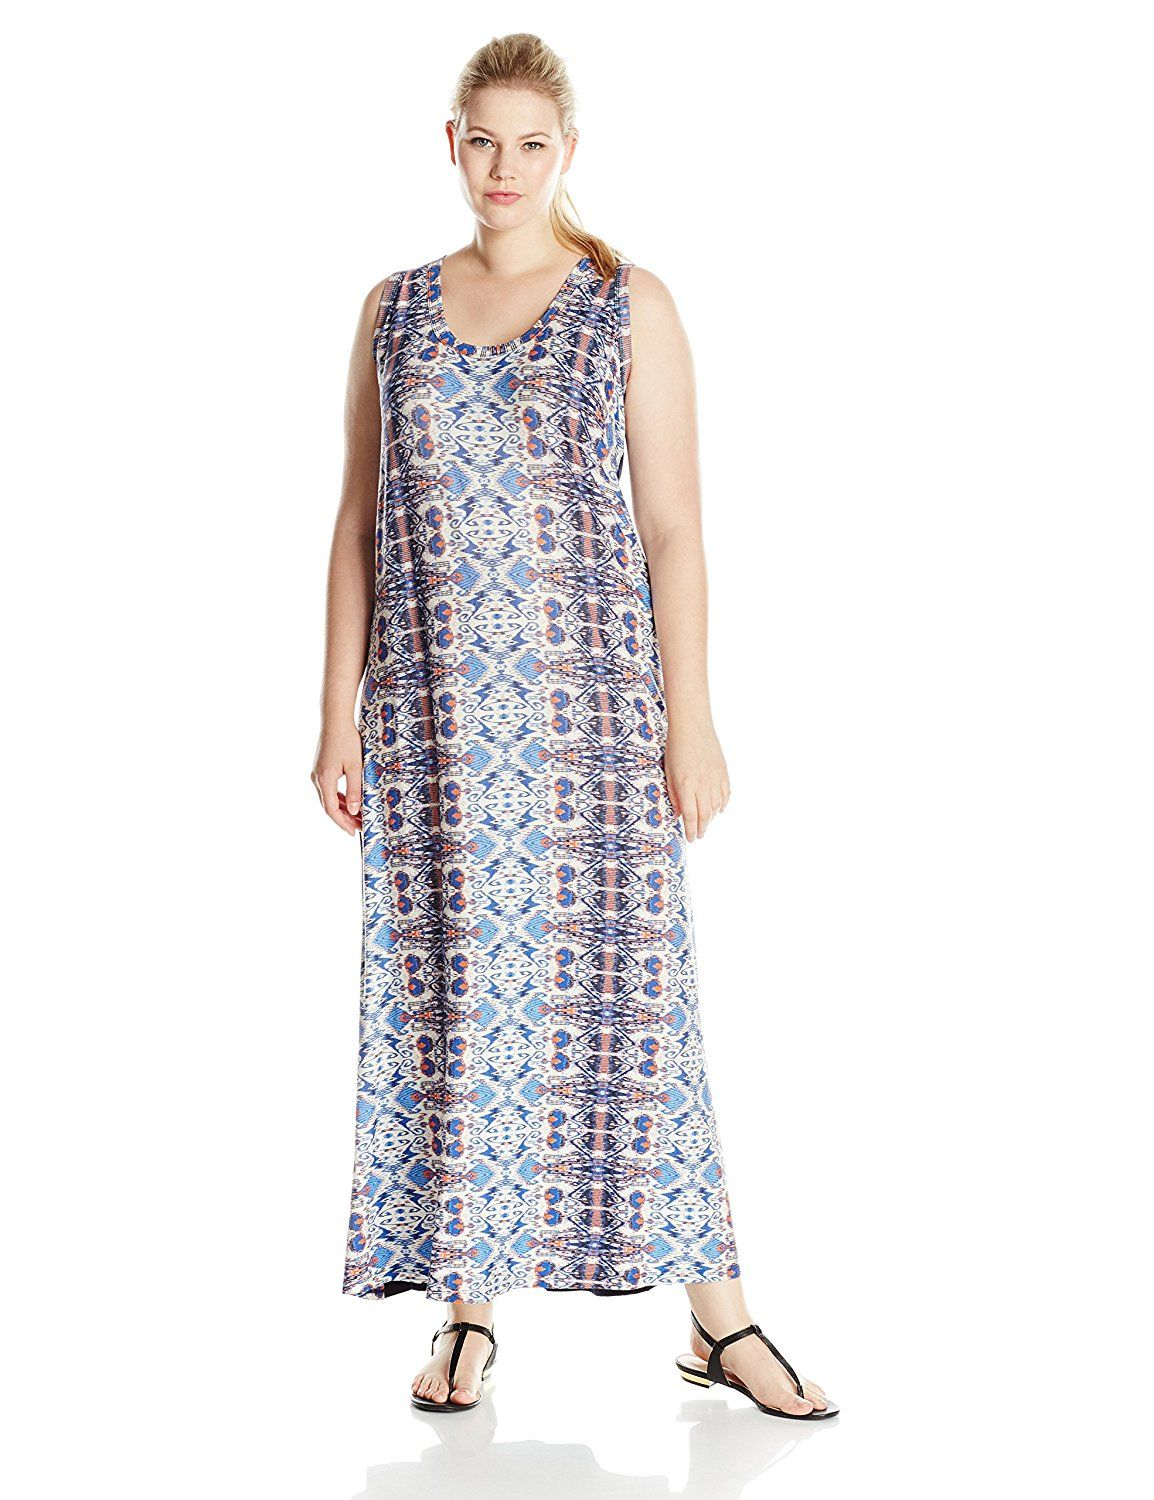 Karen kane womenus plussize maxi dress tried it love it click